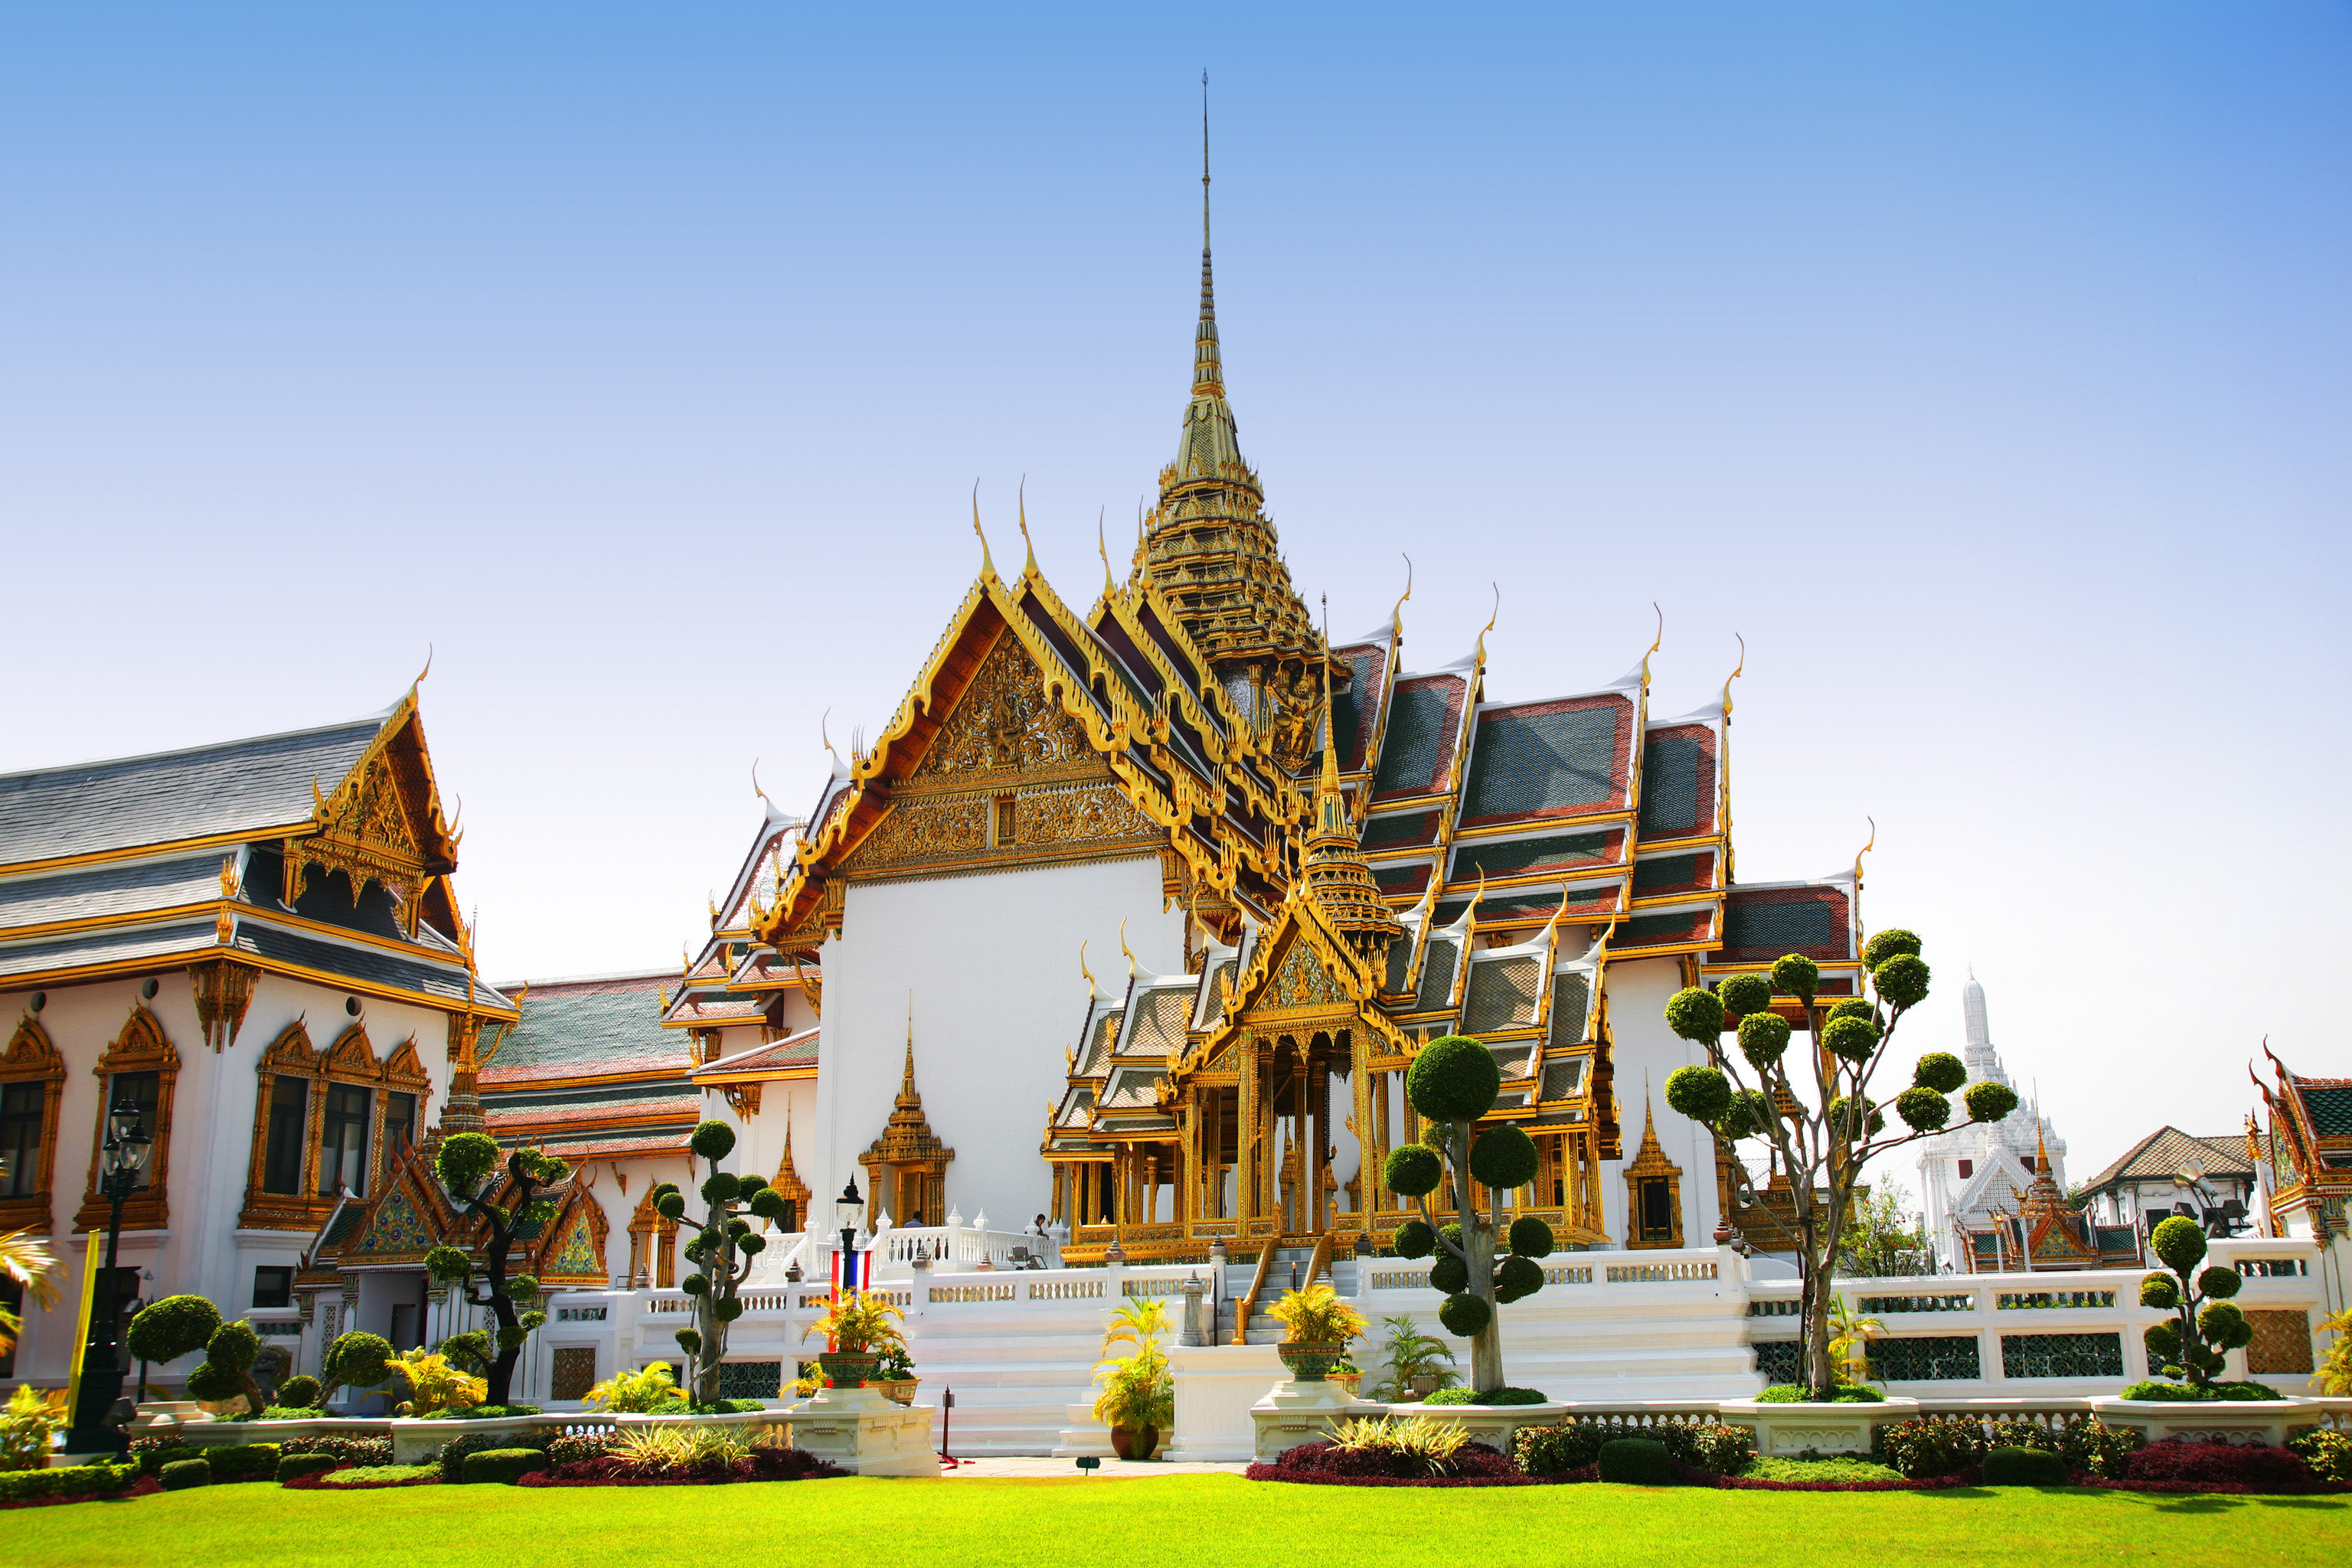 Hotels Jetsetter Guides outdoor sky building place of worship historic site landmark temple wat hindu temple tourism palace tower Resort day